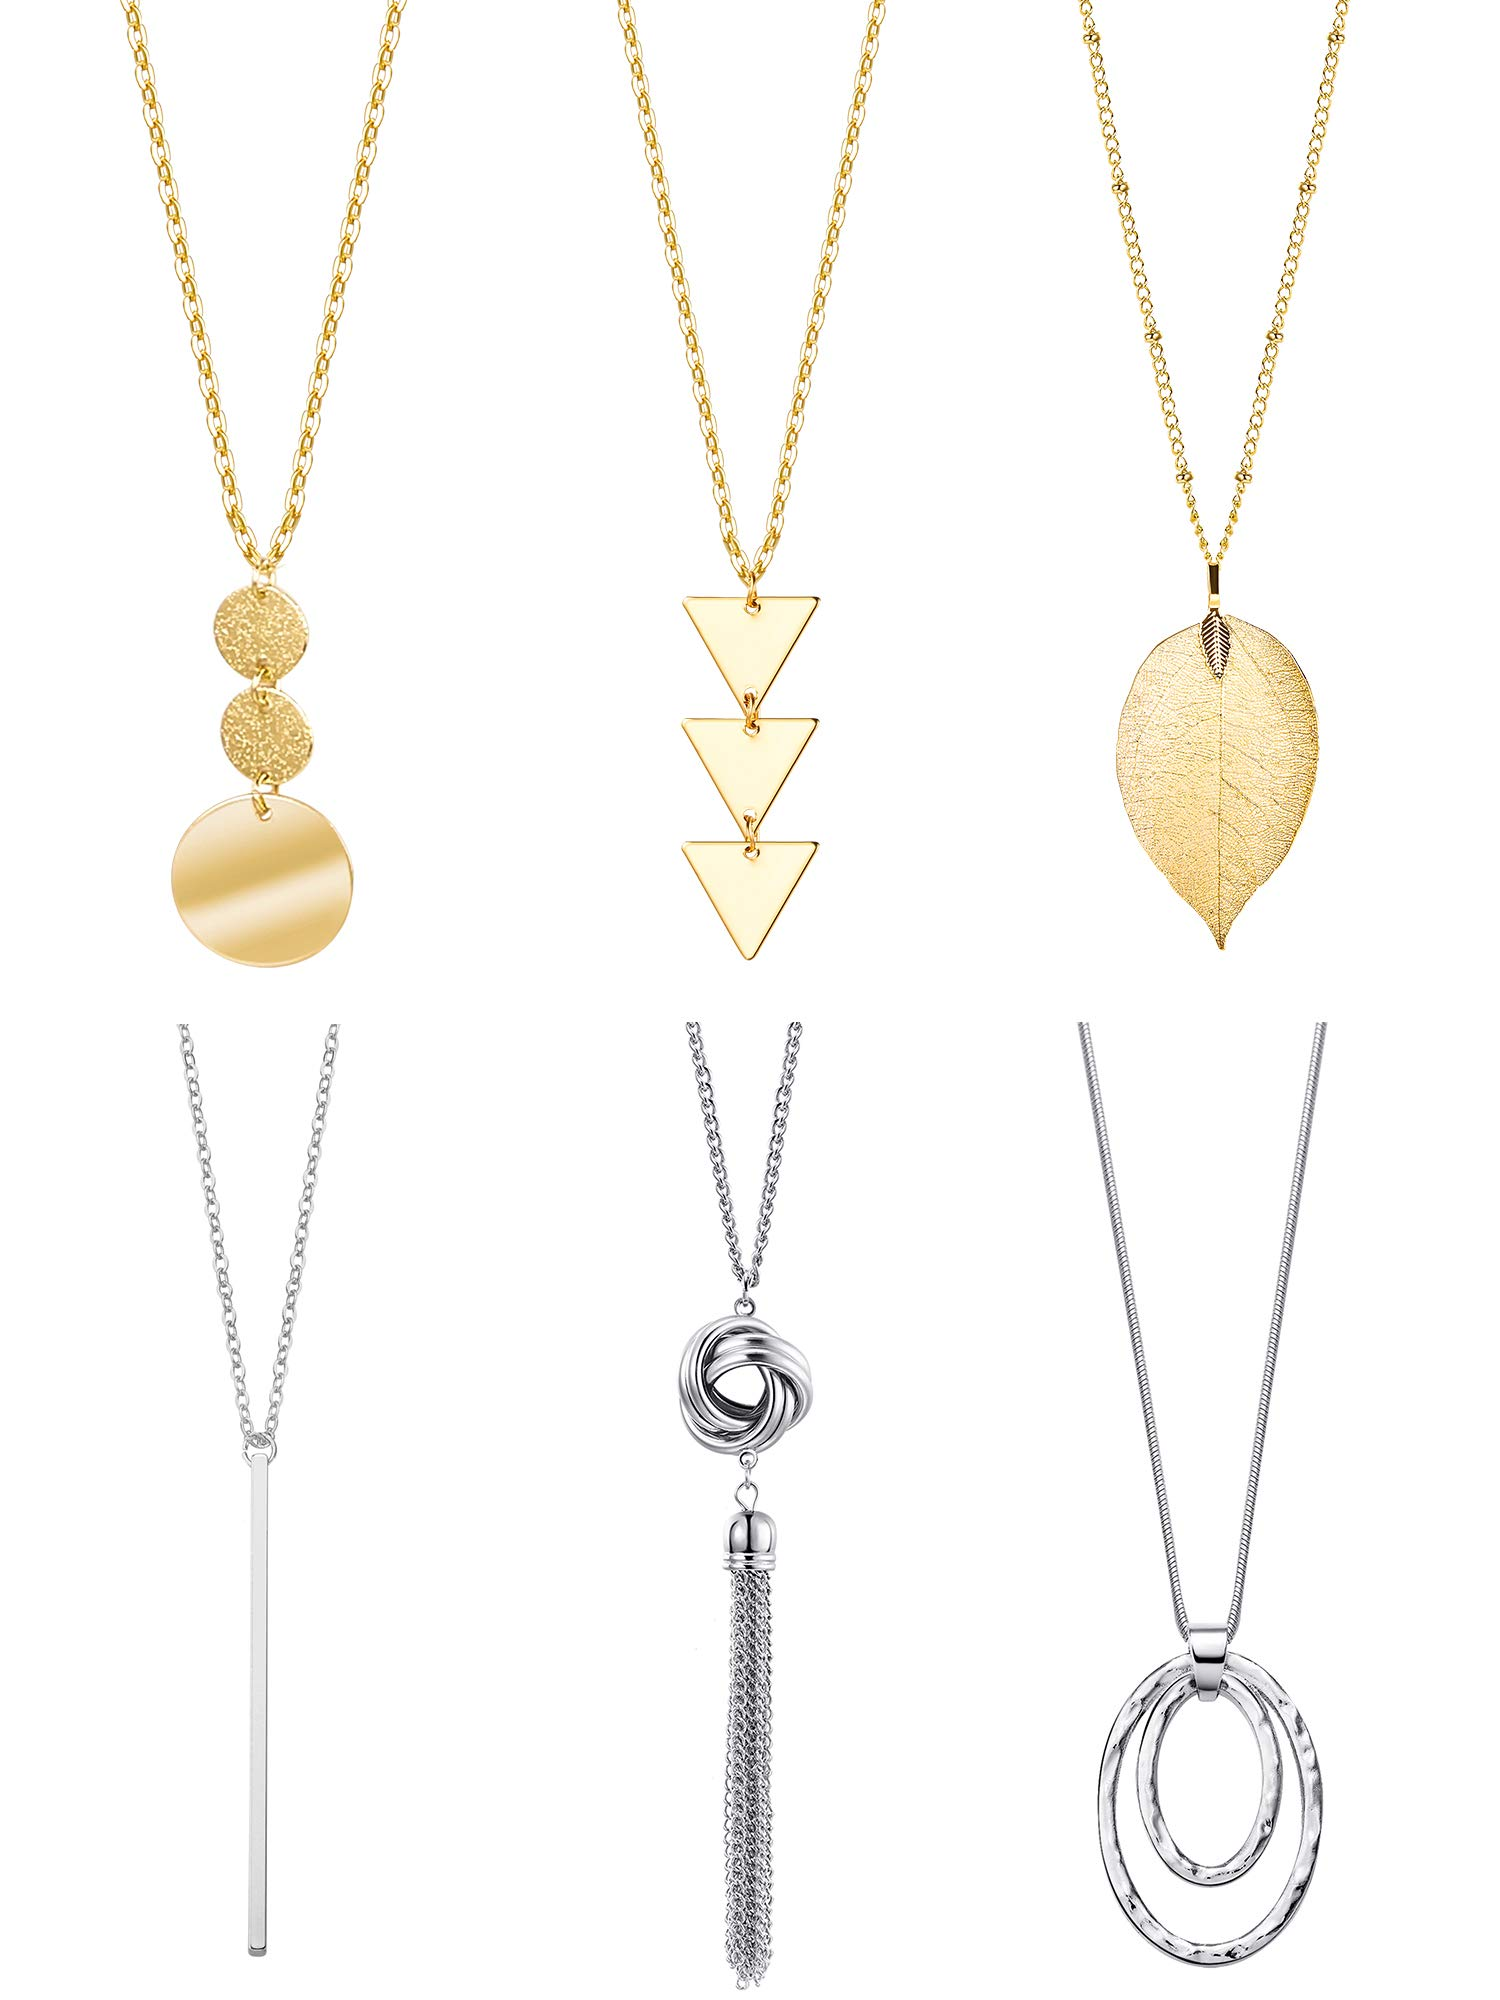 6 Pieces Y-Shaped Long Chain Necklace, Layer Simple Bar Necklace Tassel Statement Pendant for Women (Style 1) by Tatuo